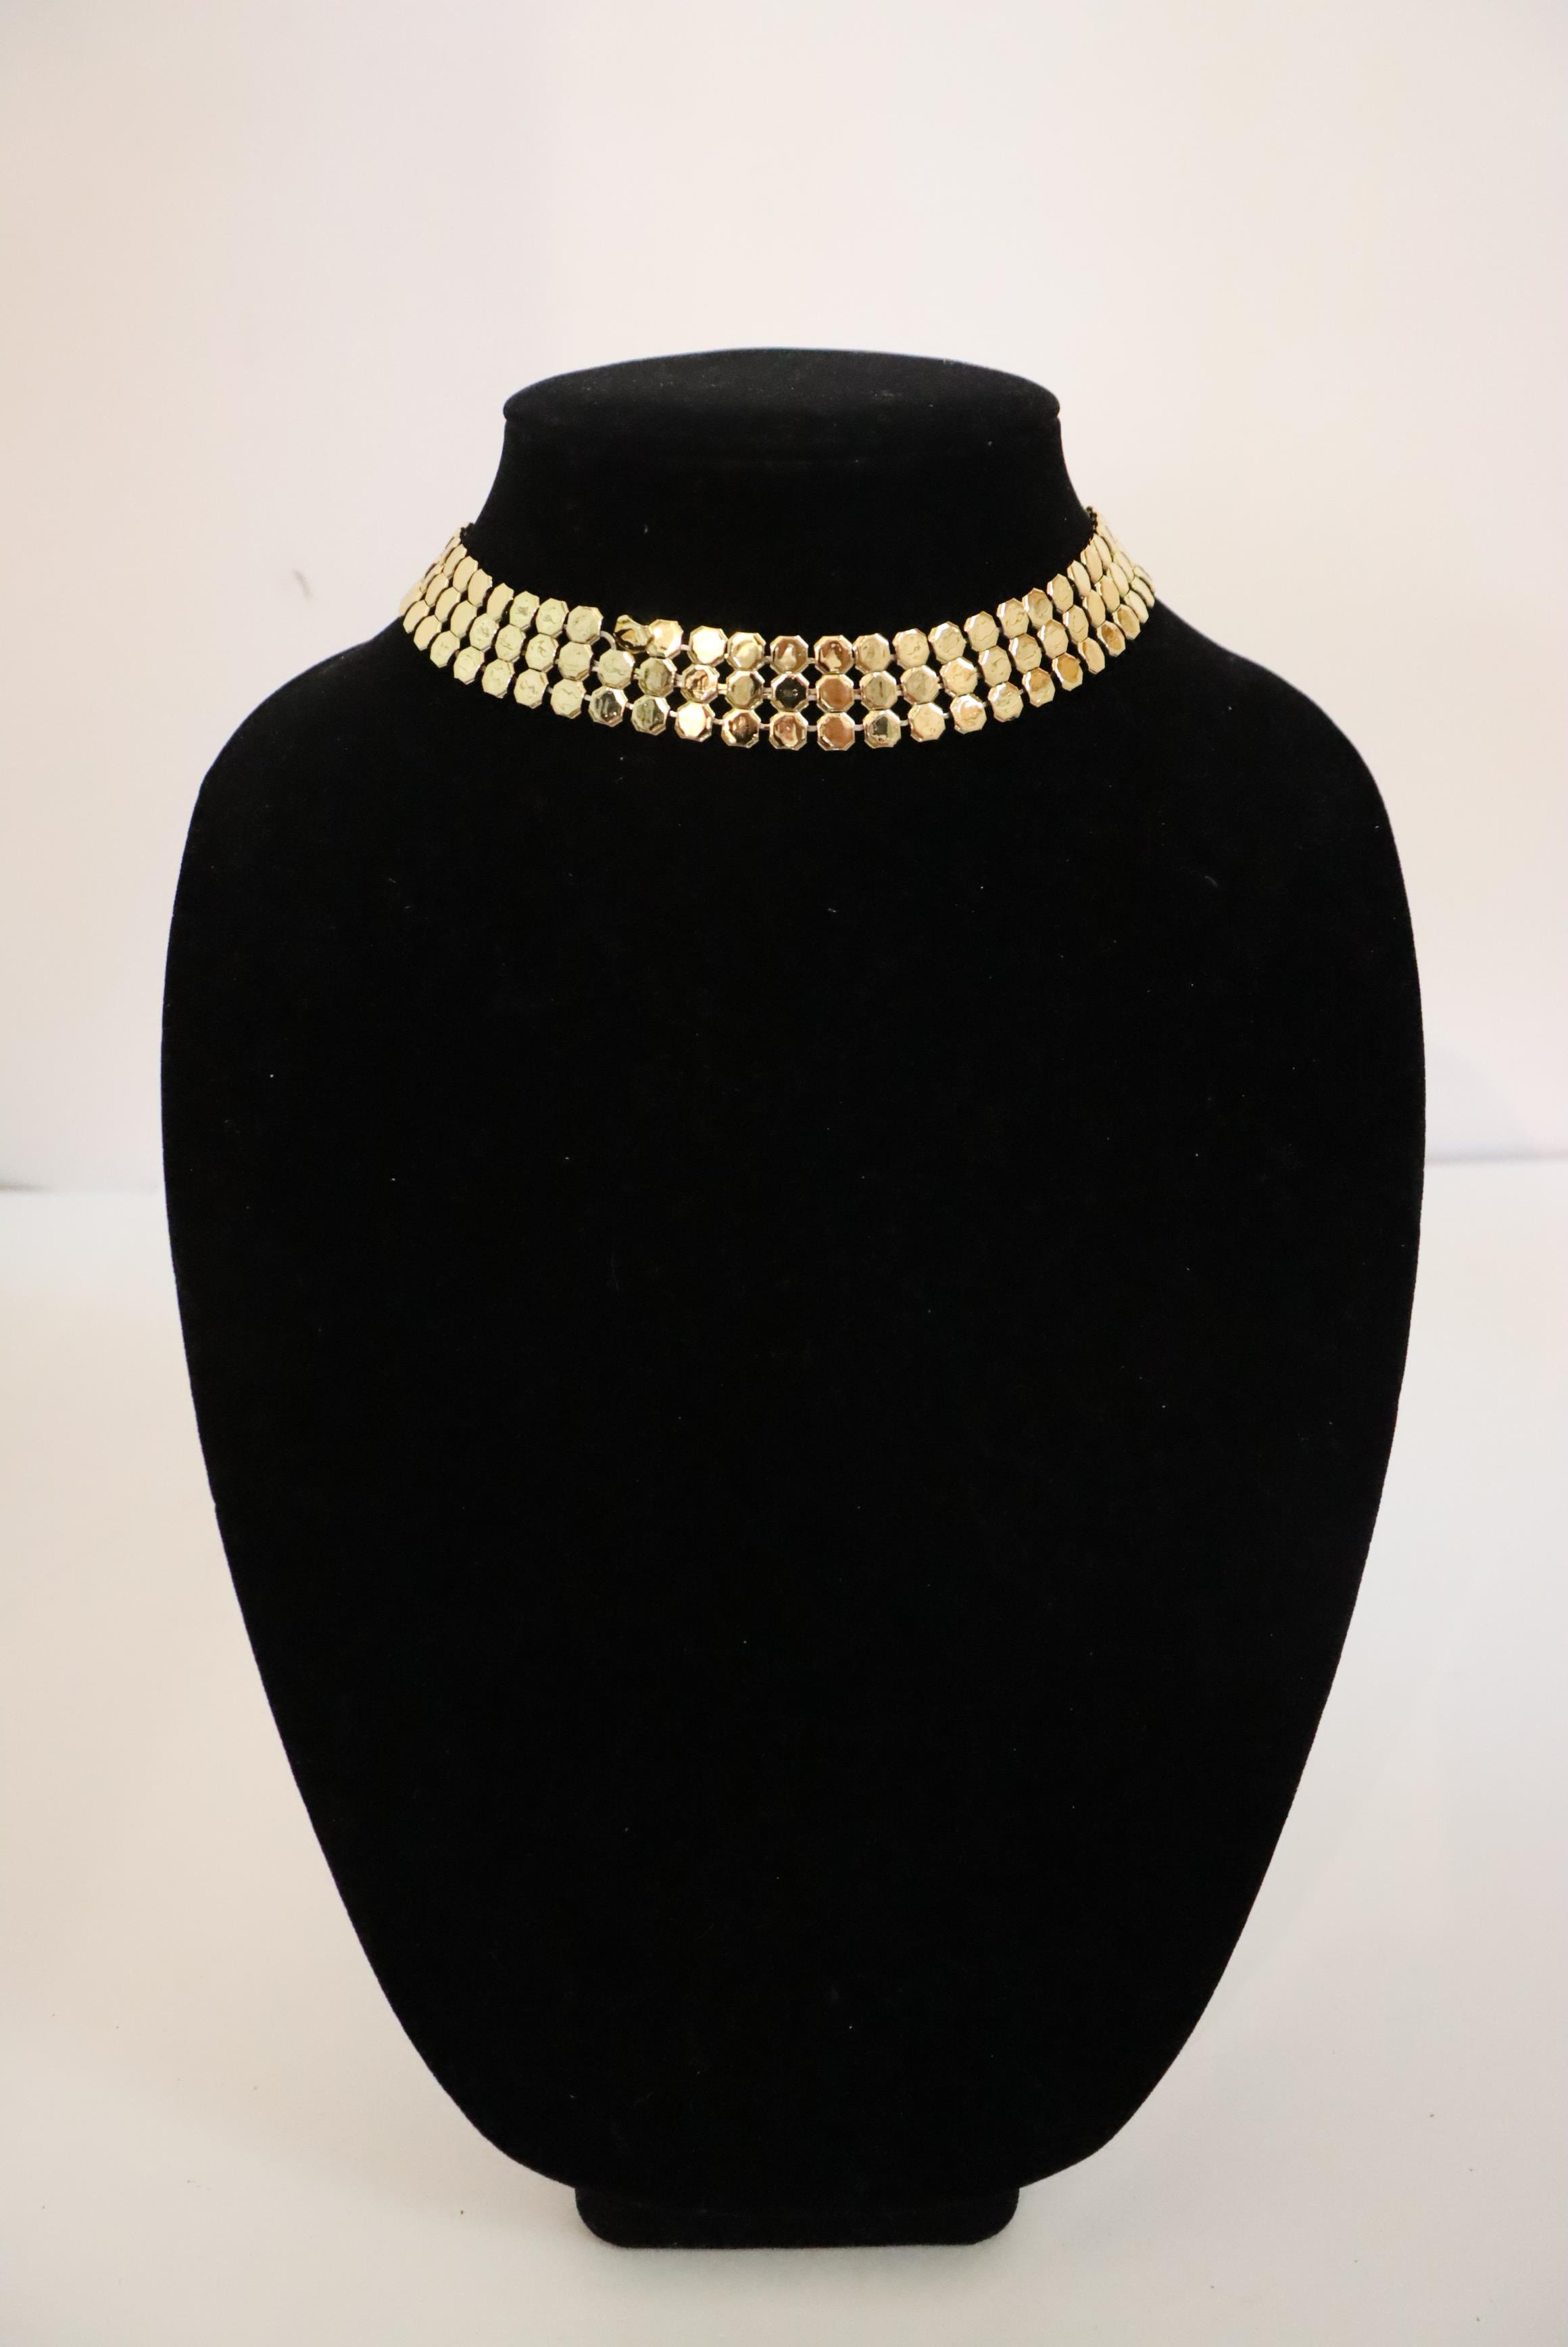 Large Collection of Ladies Gilt Jewelry, 12 Pieces - Image 15 of 20